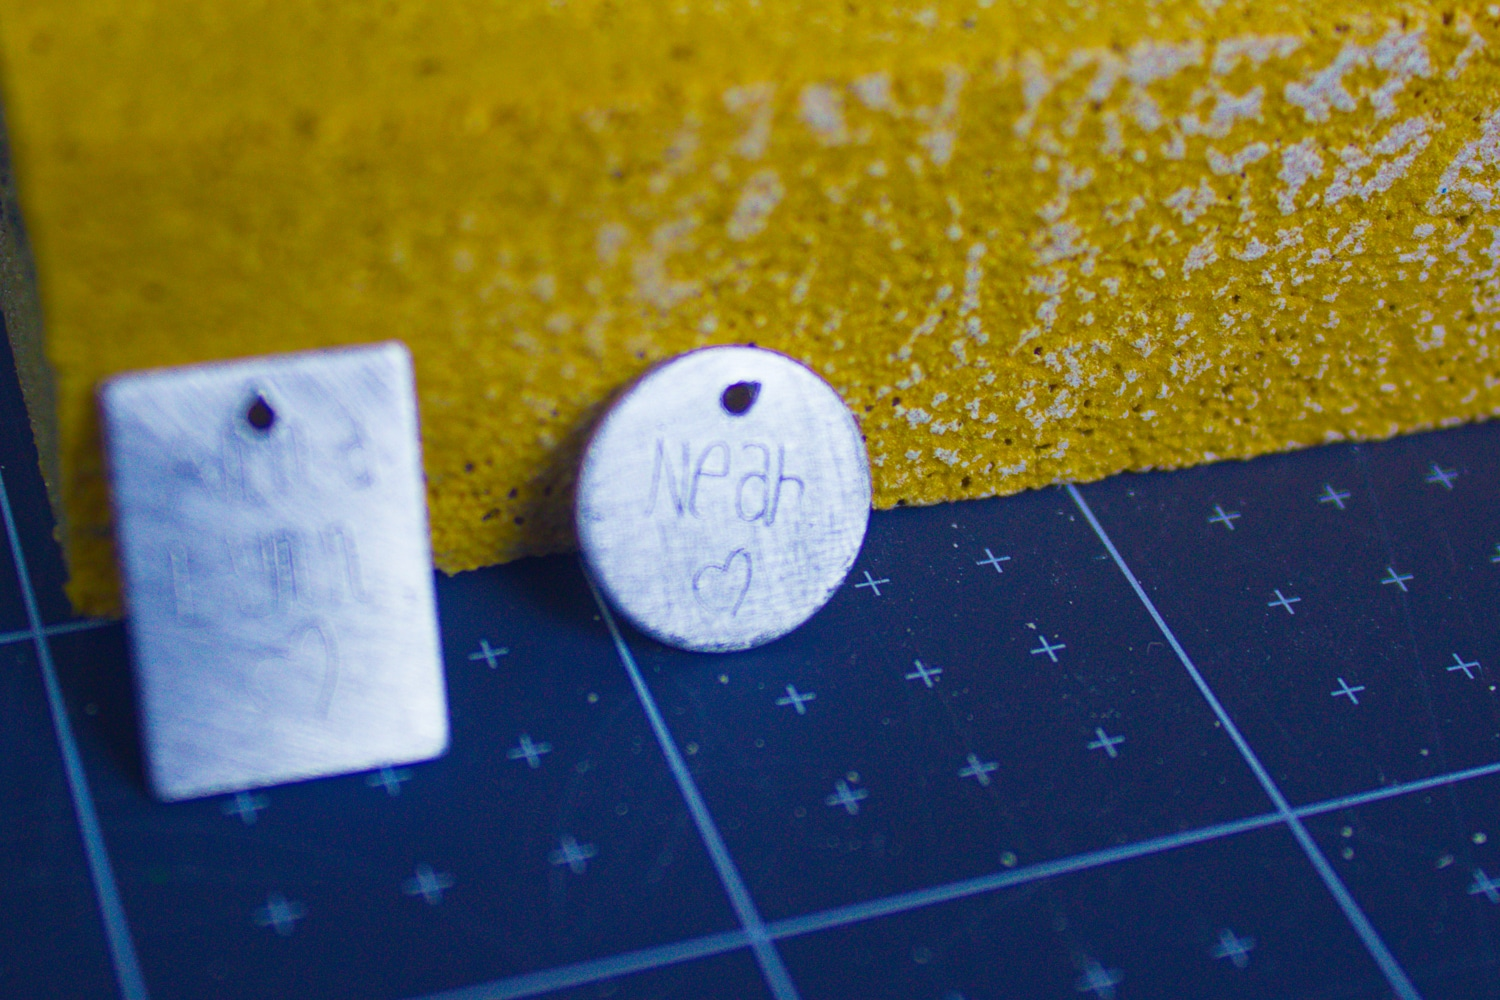 cricut engraving tool engraved charms sitting against a yellow sanding block